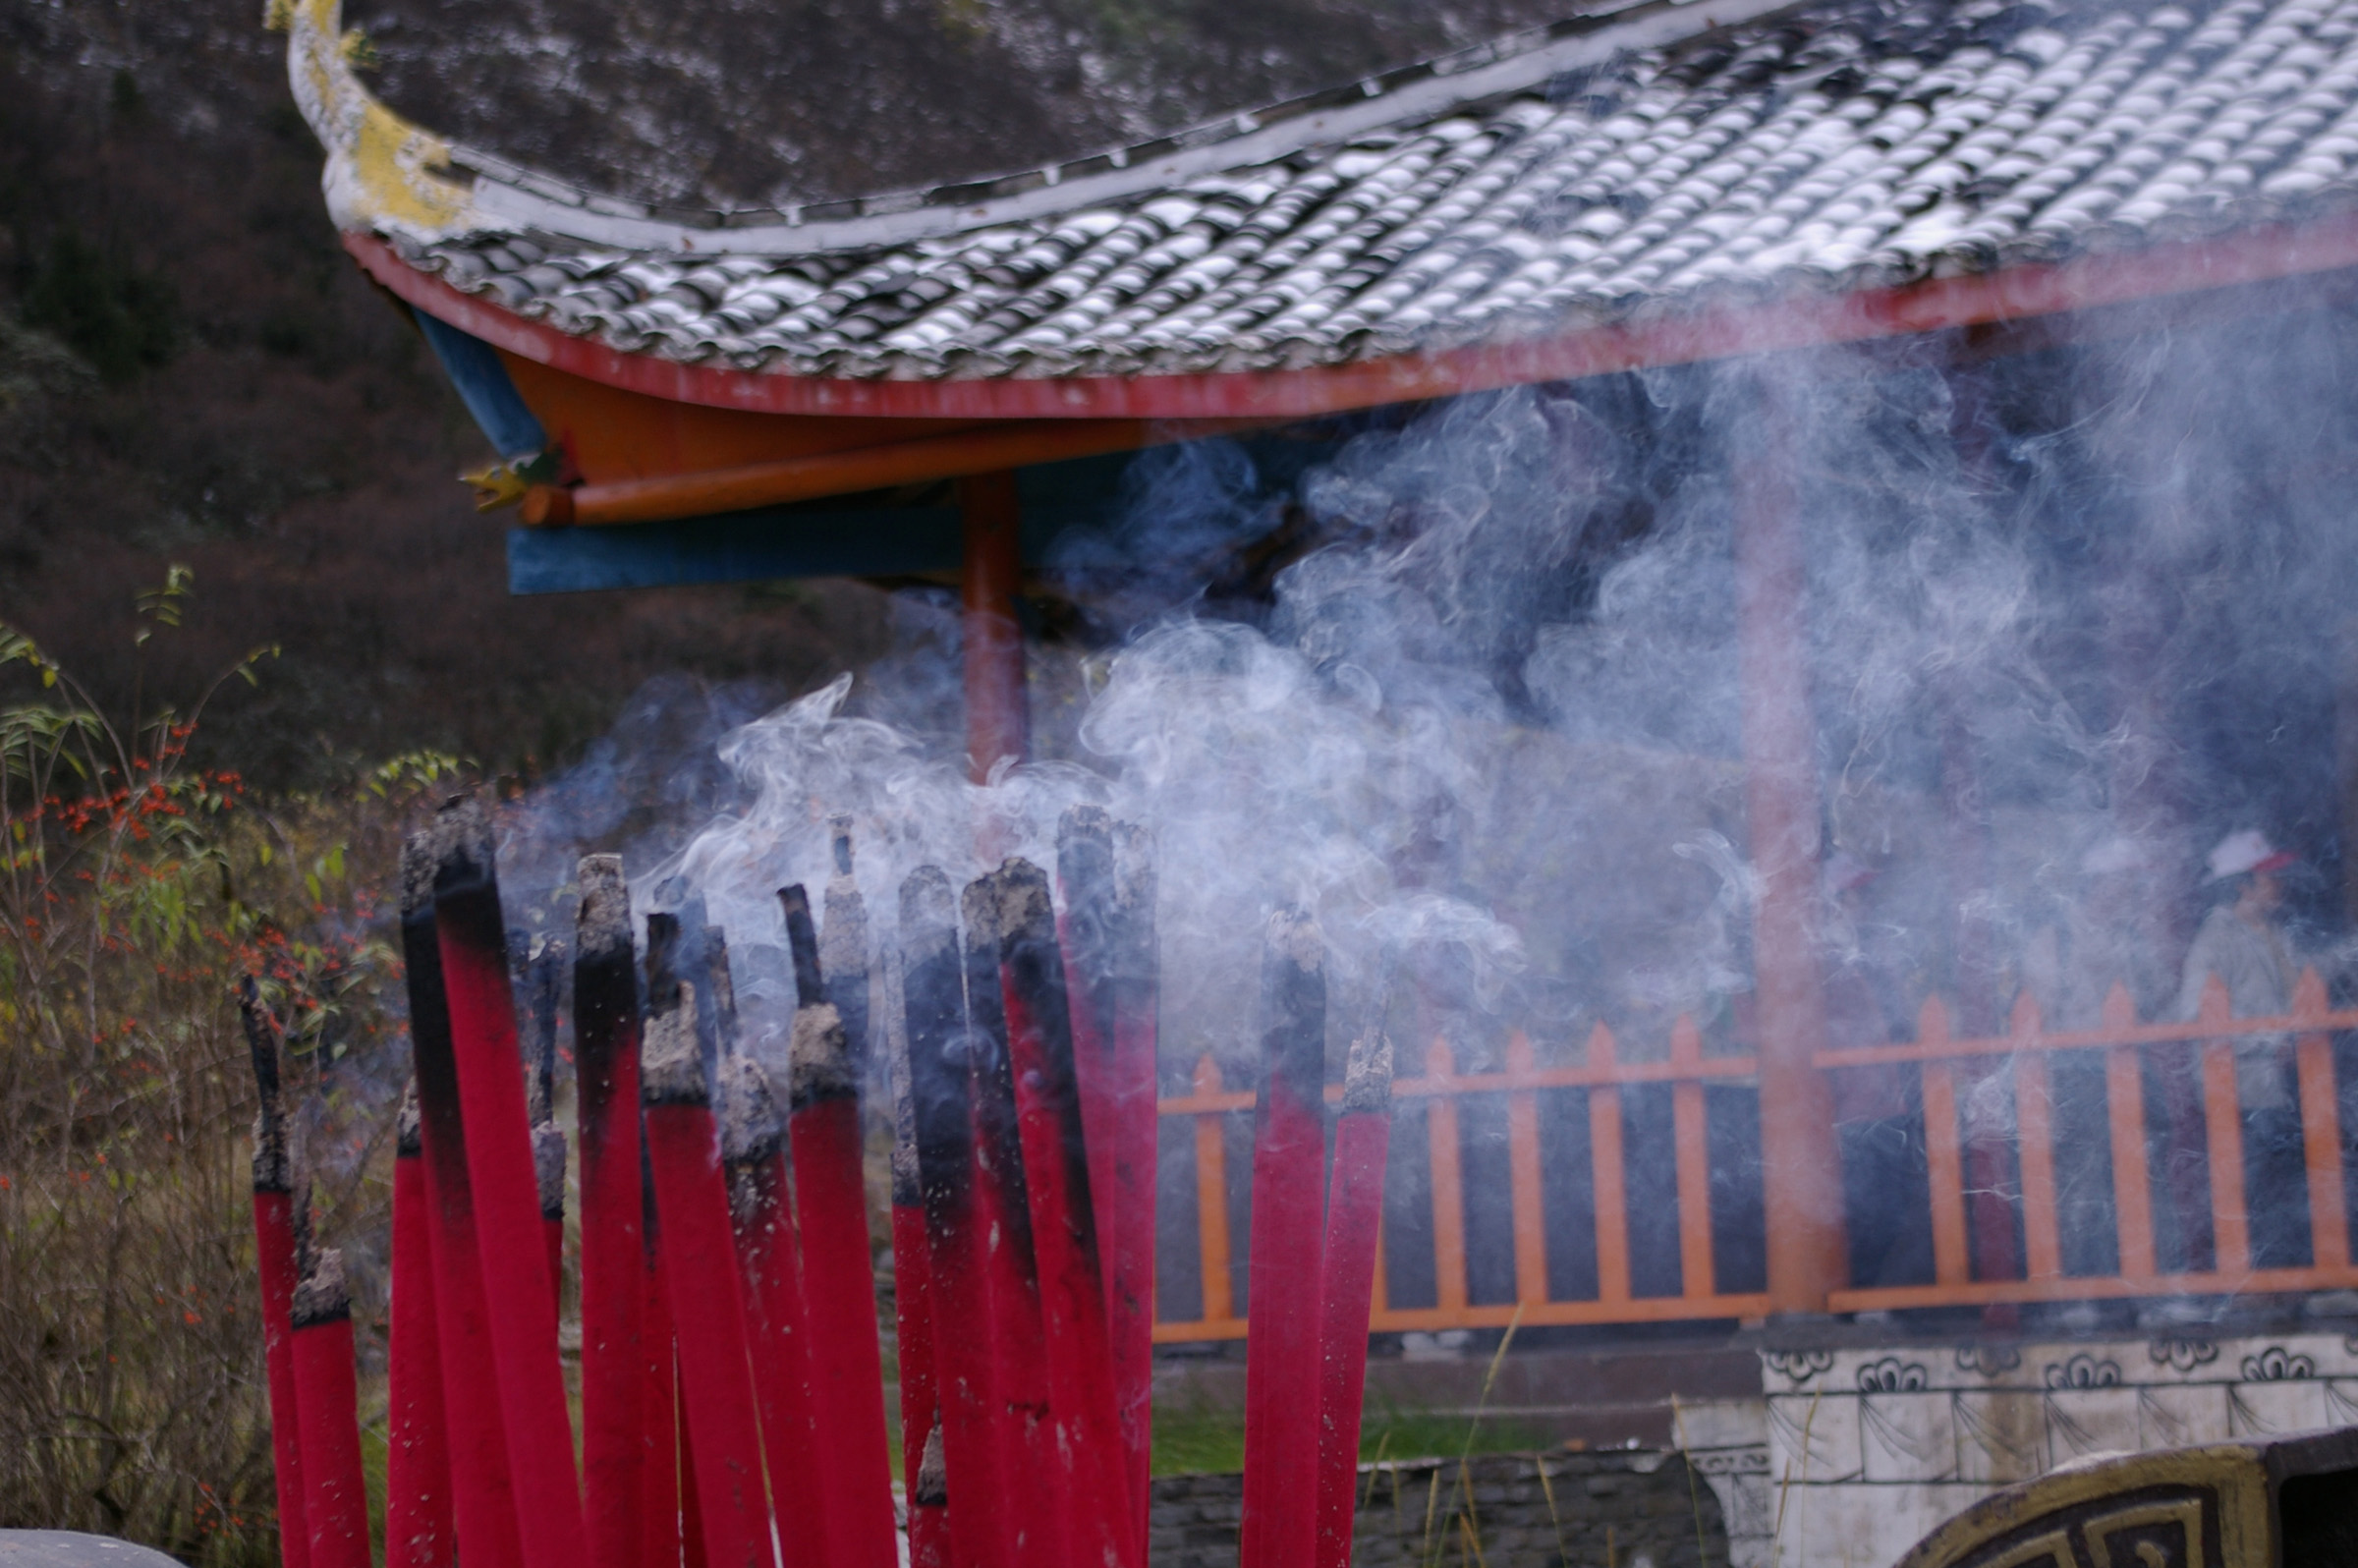 Burning incense sticks, or joss sticks, creating an aromatic smoke outside a Chinese temple